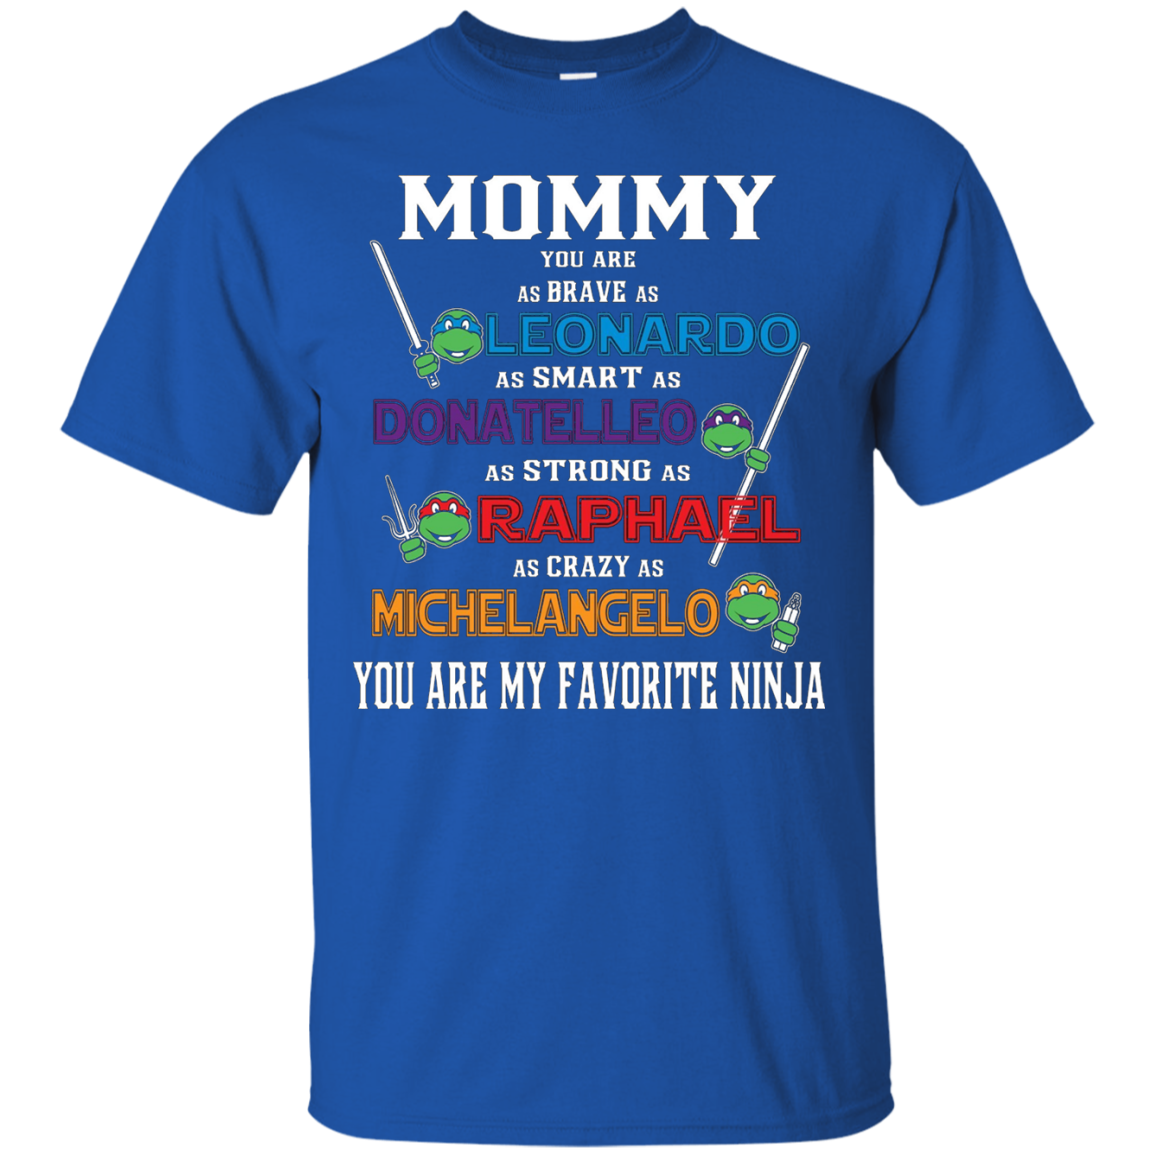 Mommy - You Are My Favorite Ninja T-shirt